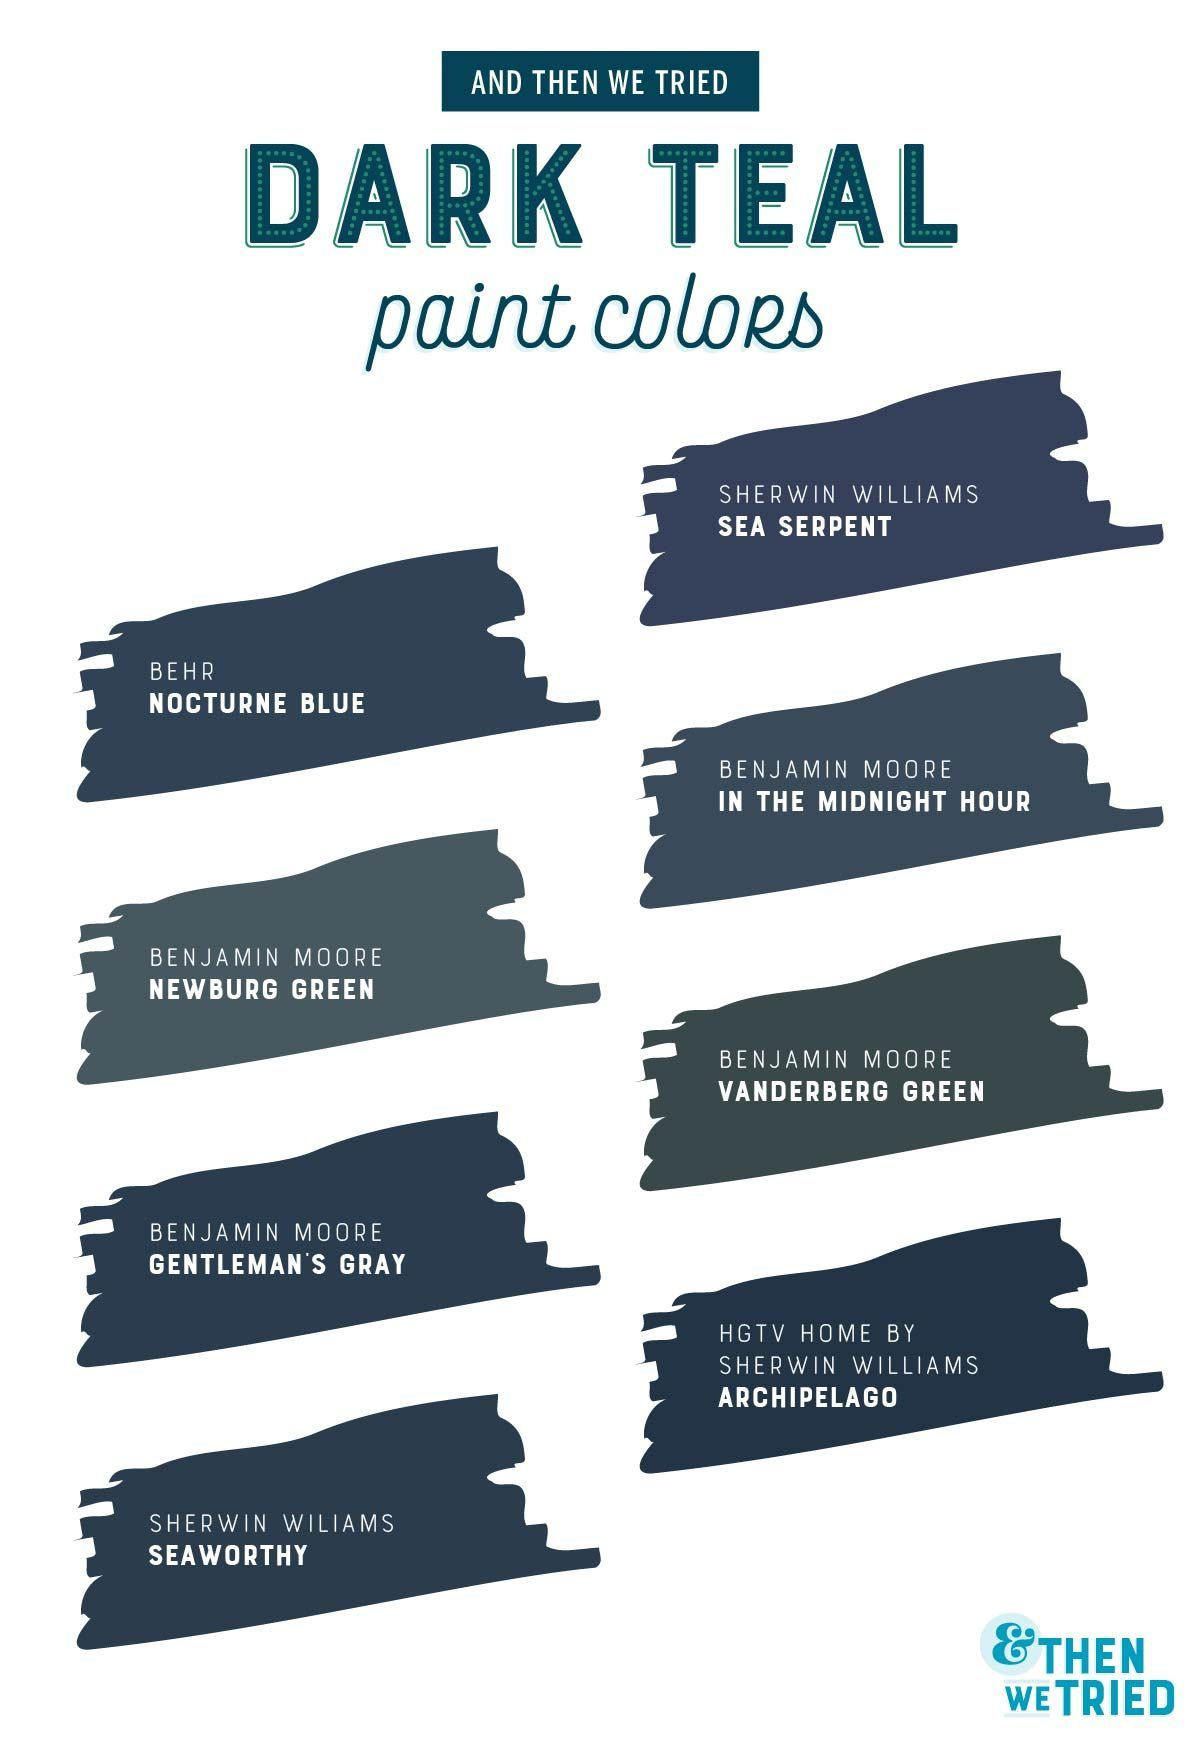 Choosing A Dark Teal House Paint Color For Exterior Siding Teal Paint Colors Exterior Paint Colors For House